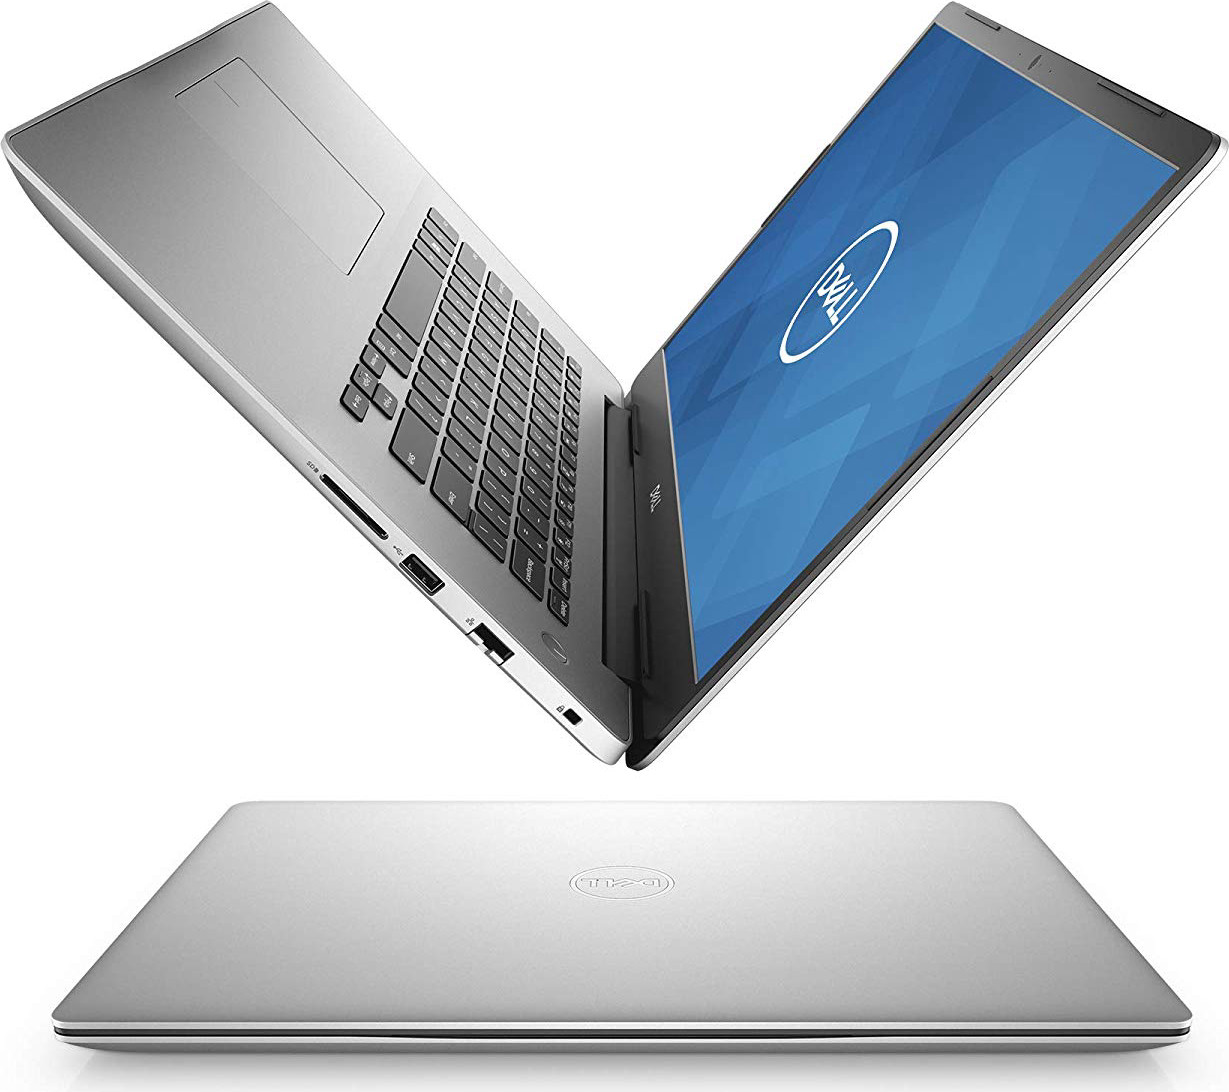 Dell Inspiron 15 5000 Laptop, 15.6-Inch FHD (1920 X 1080) IPS, Intel i7-8565, Nvidia(R) Geforce(R) MX250 with 2GB Gddr, 8GB, 128 GB SSD+1TB, i5580-7707SLV-PUS